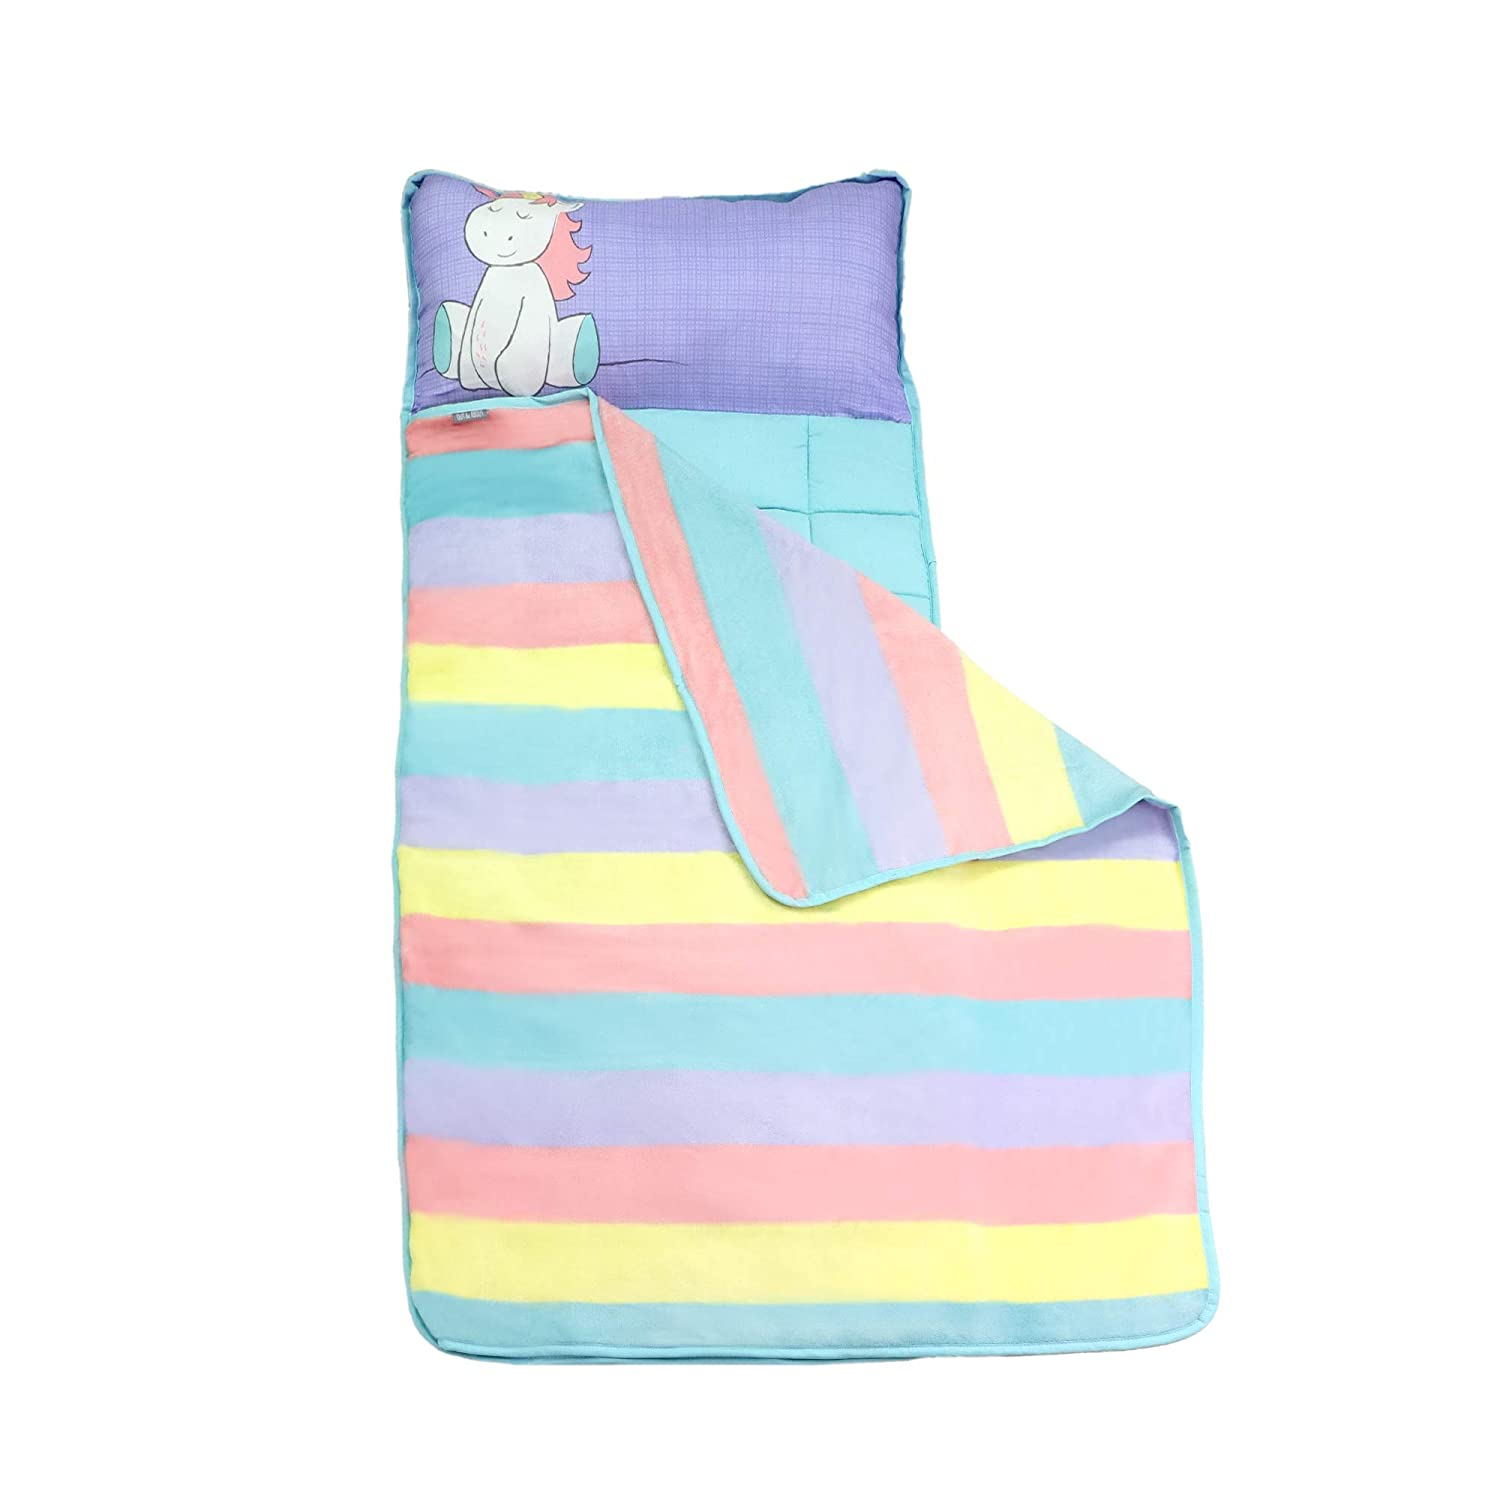 Homezy Nap Mat for Toddlers at Preschool Kinder Daycare – Portable Unicorn Sleeping Bag Mats w Blanket + Pillow for Boys or Girls